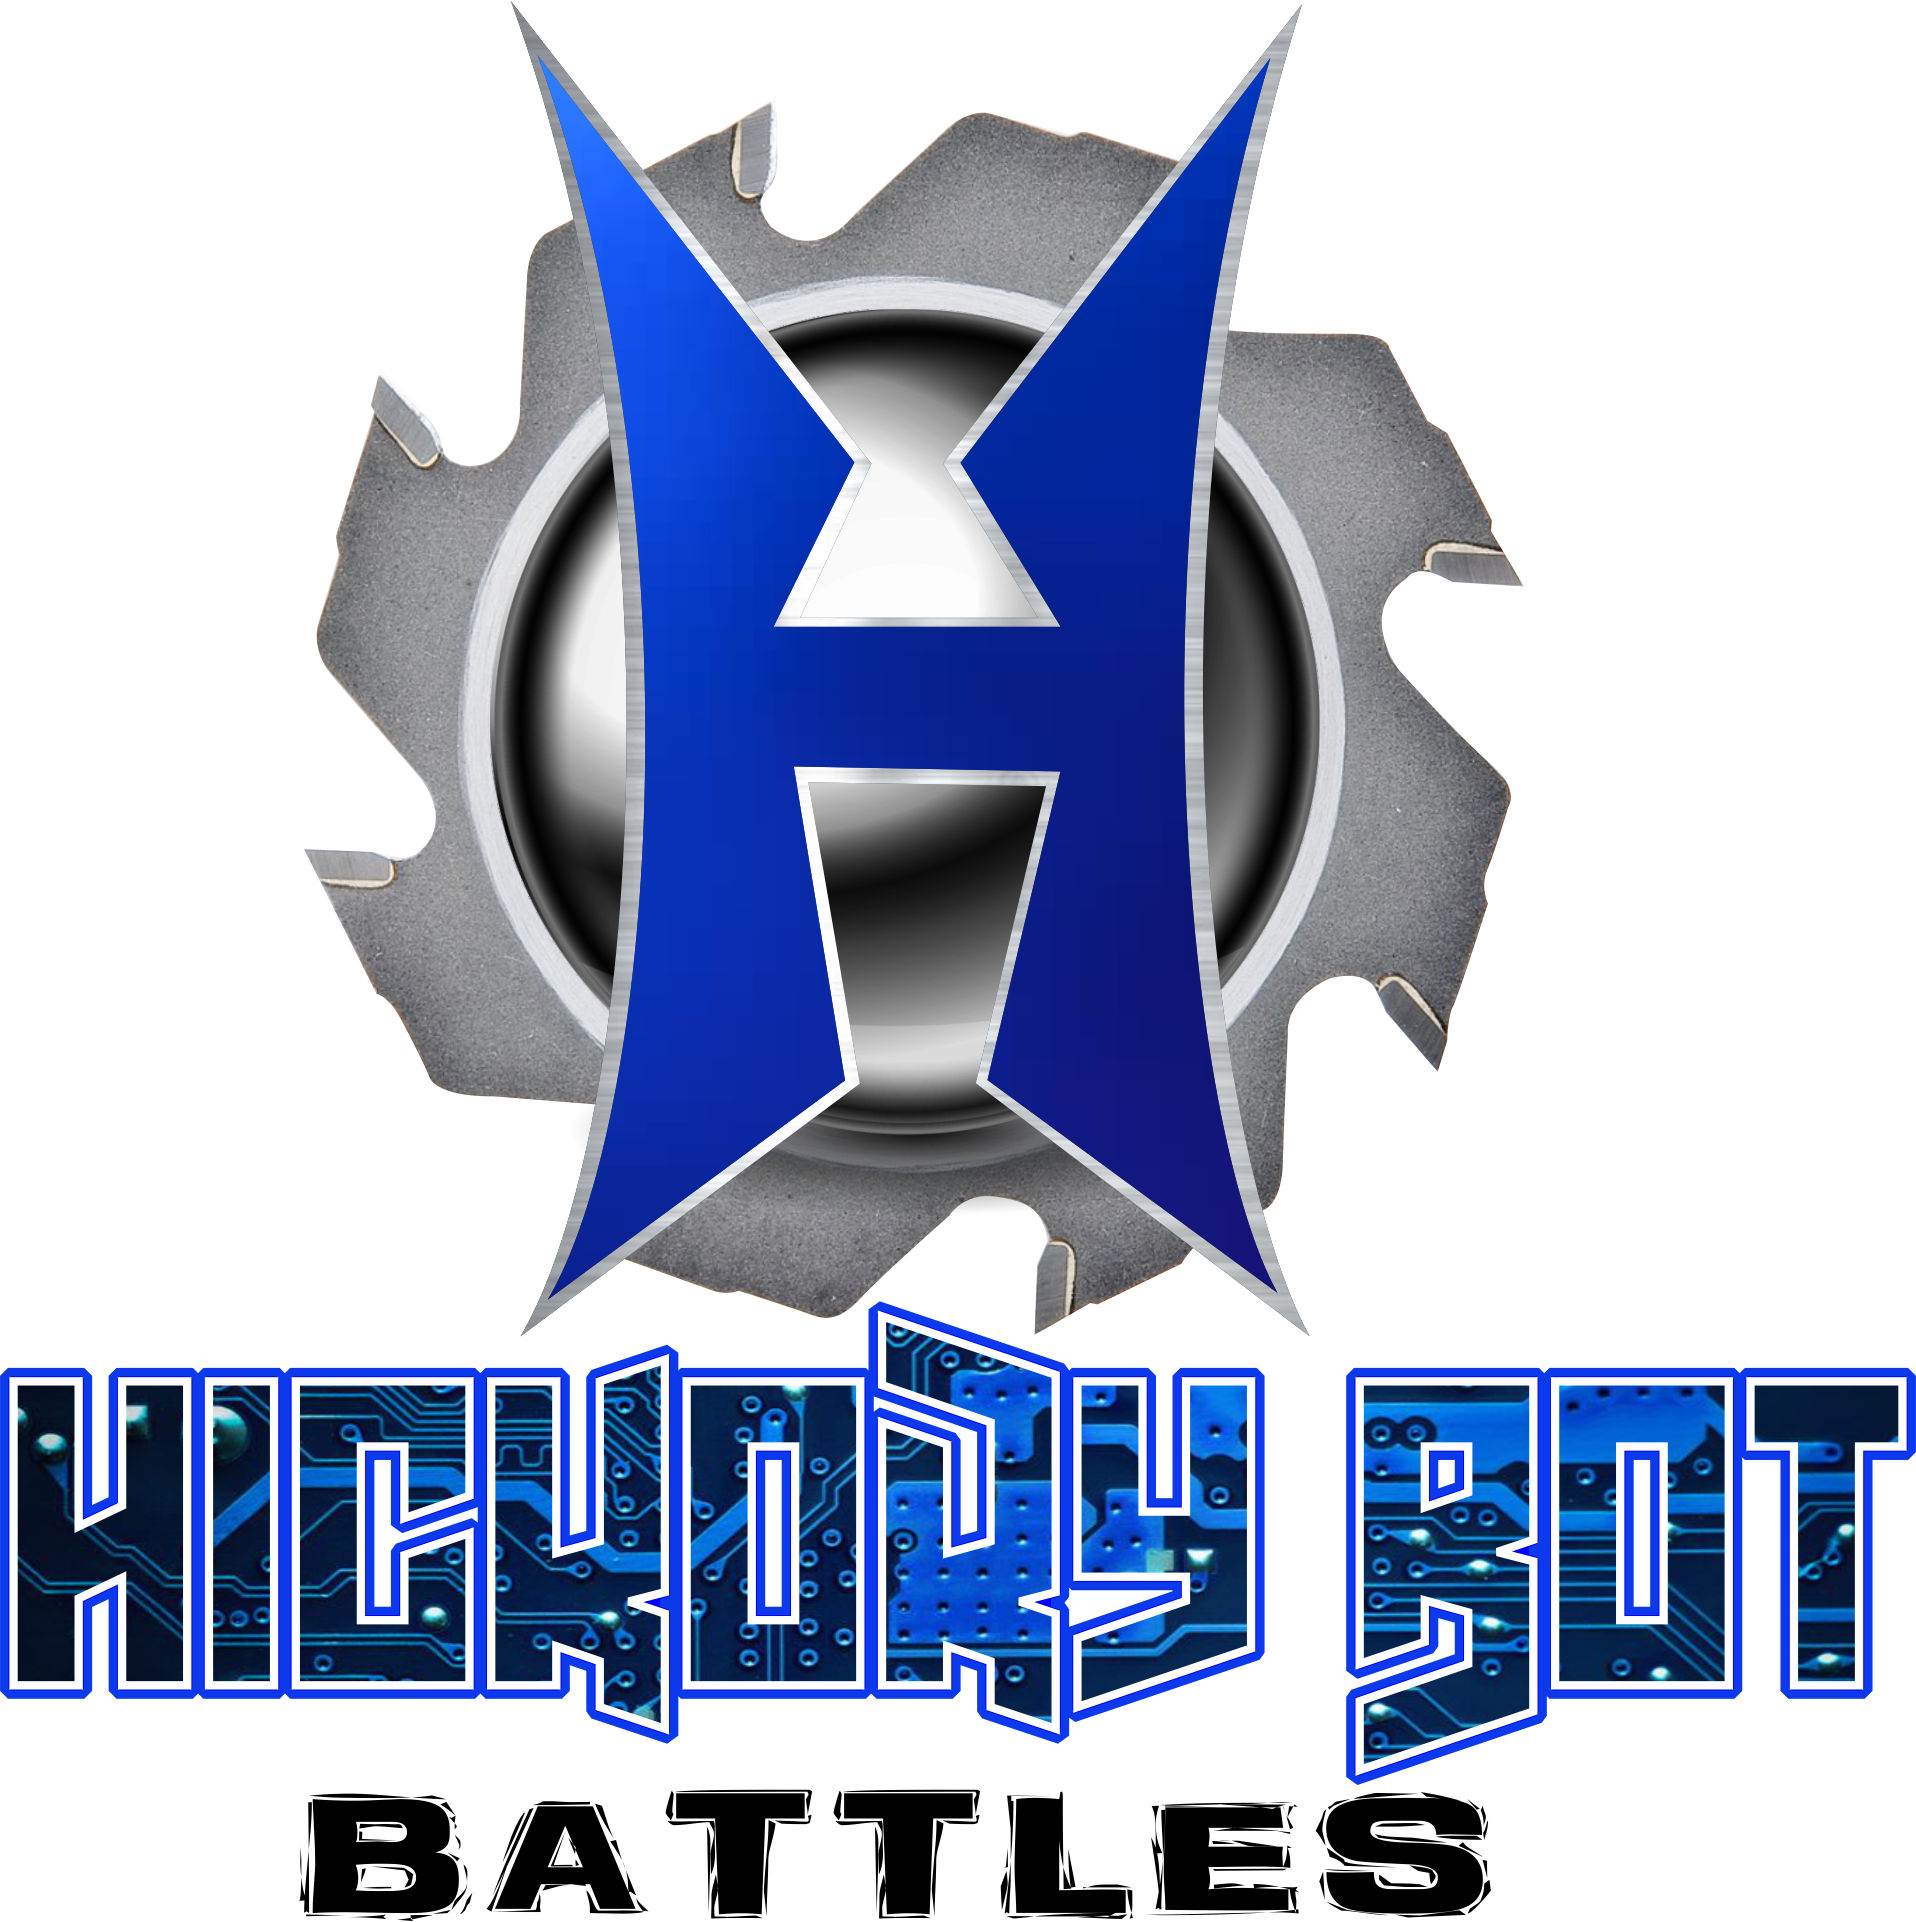 Hickory bot hd jpeg 300dpi